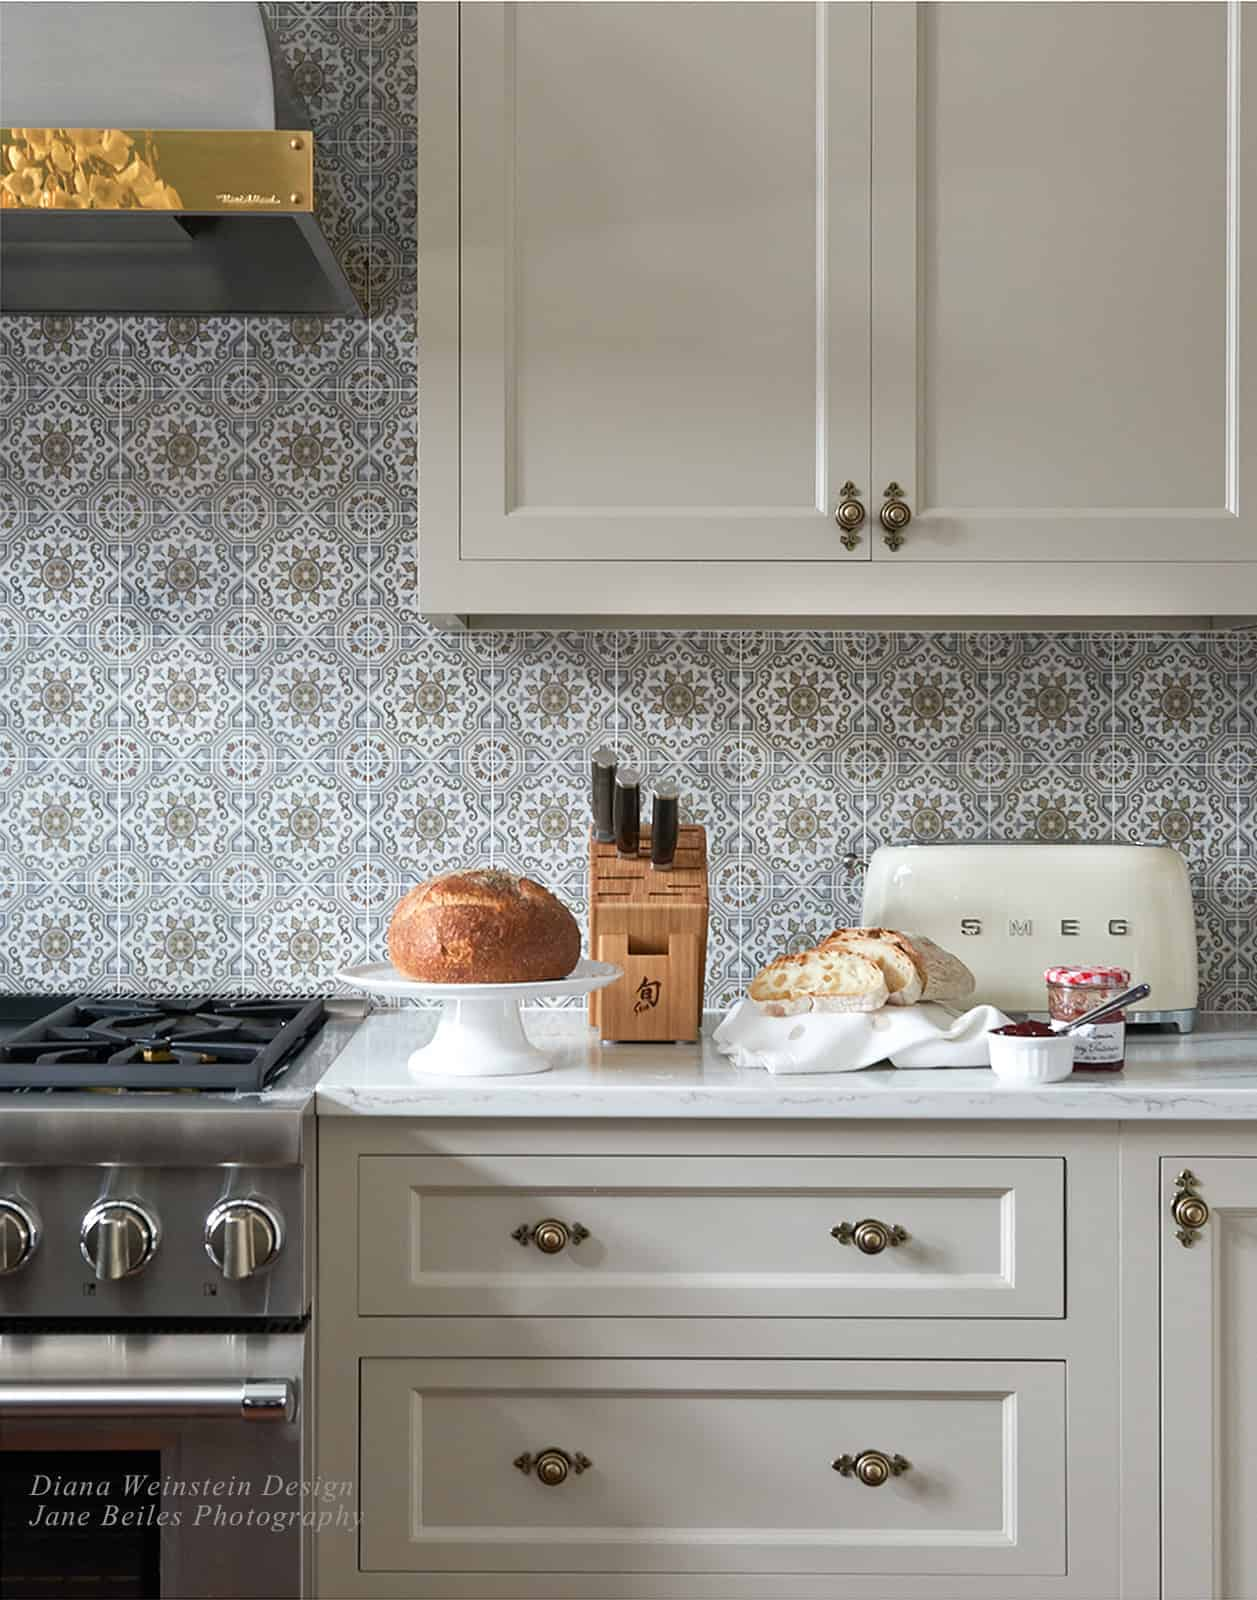 Dianne Weinstein Sanza Kitchen Backsplash